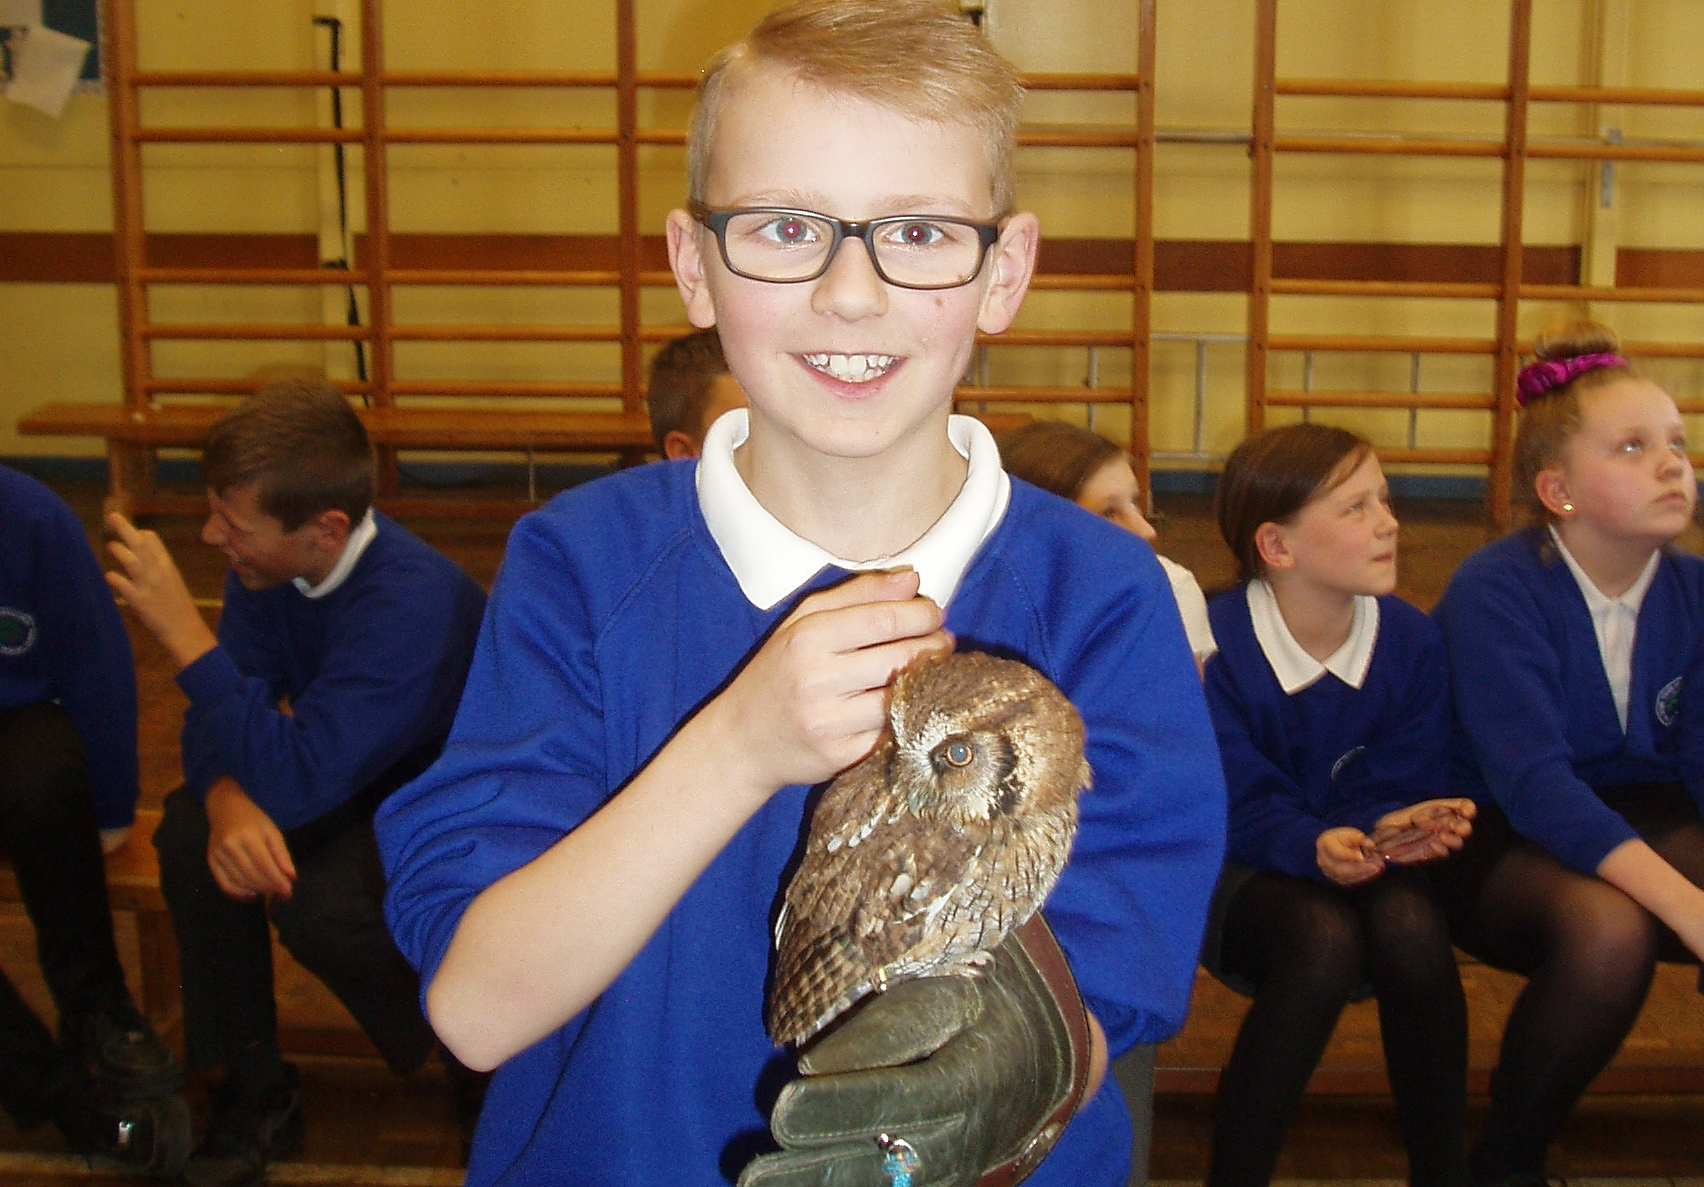 Flintshire primary school pupils get up close and personal with rescue owls